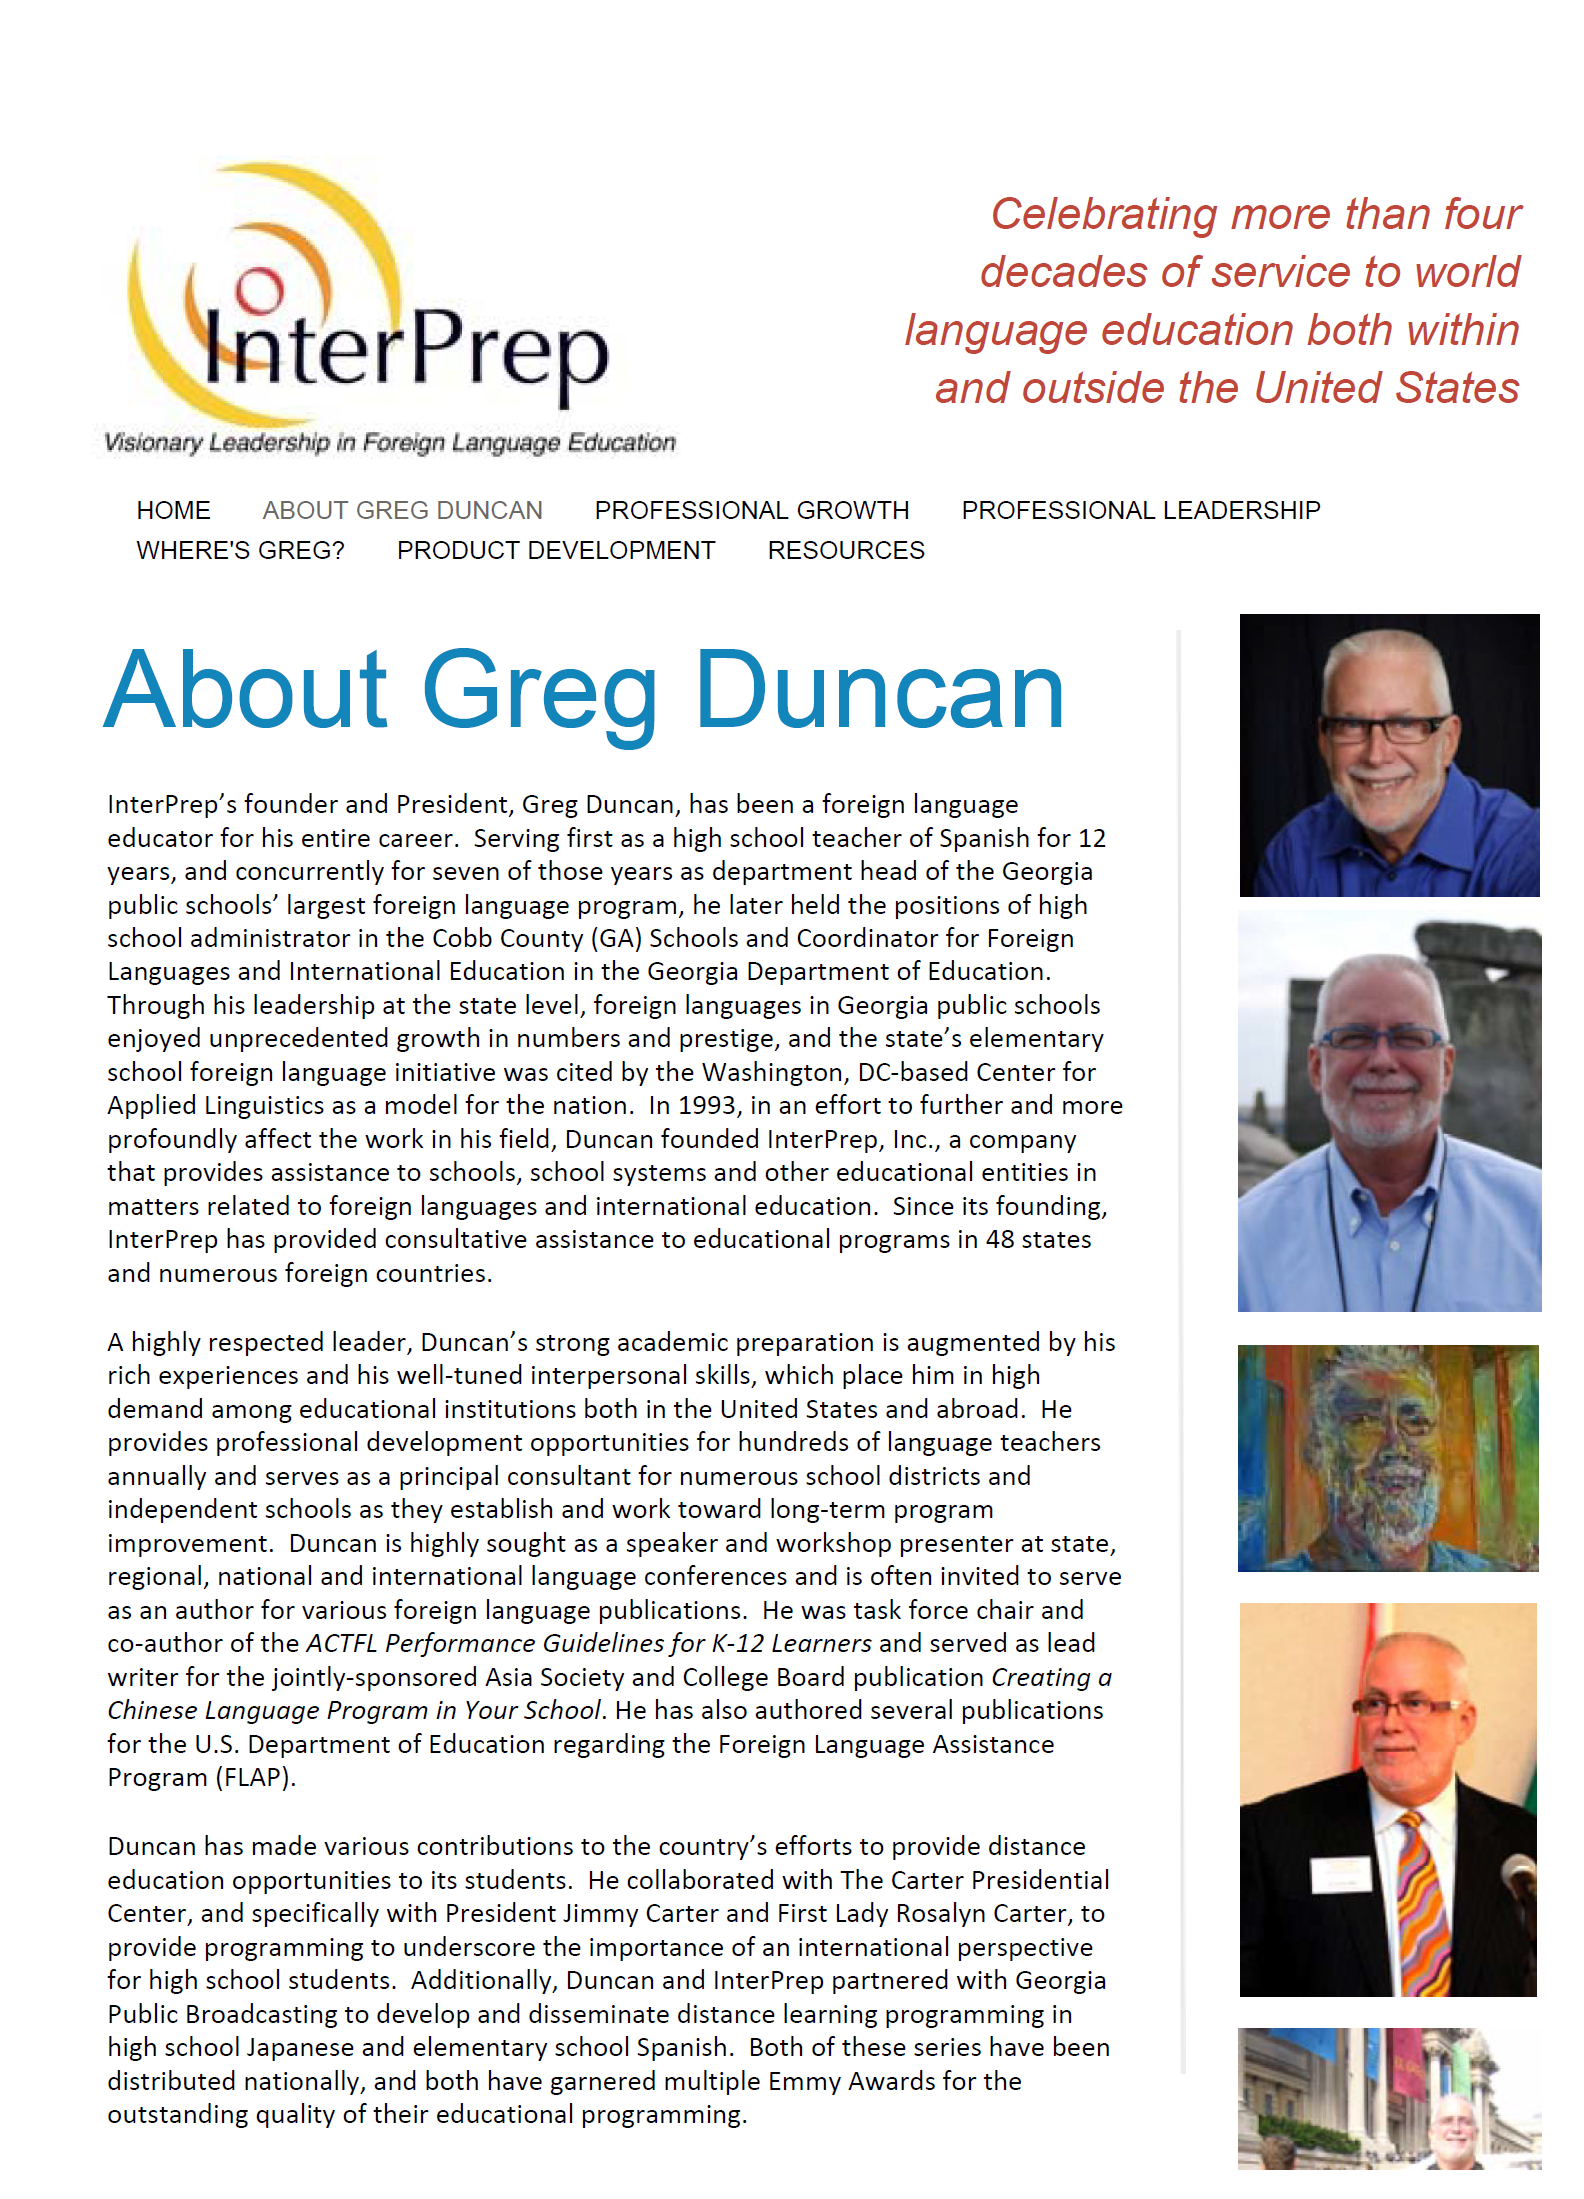 Biography of Greg Duncan